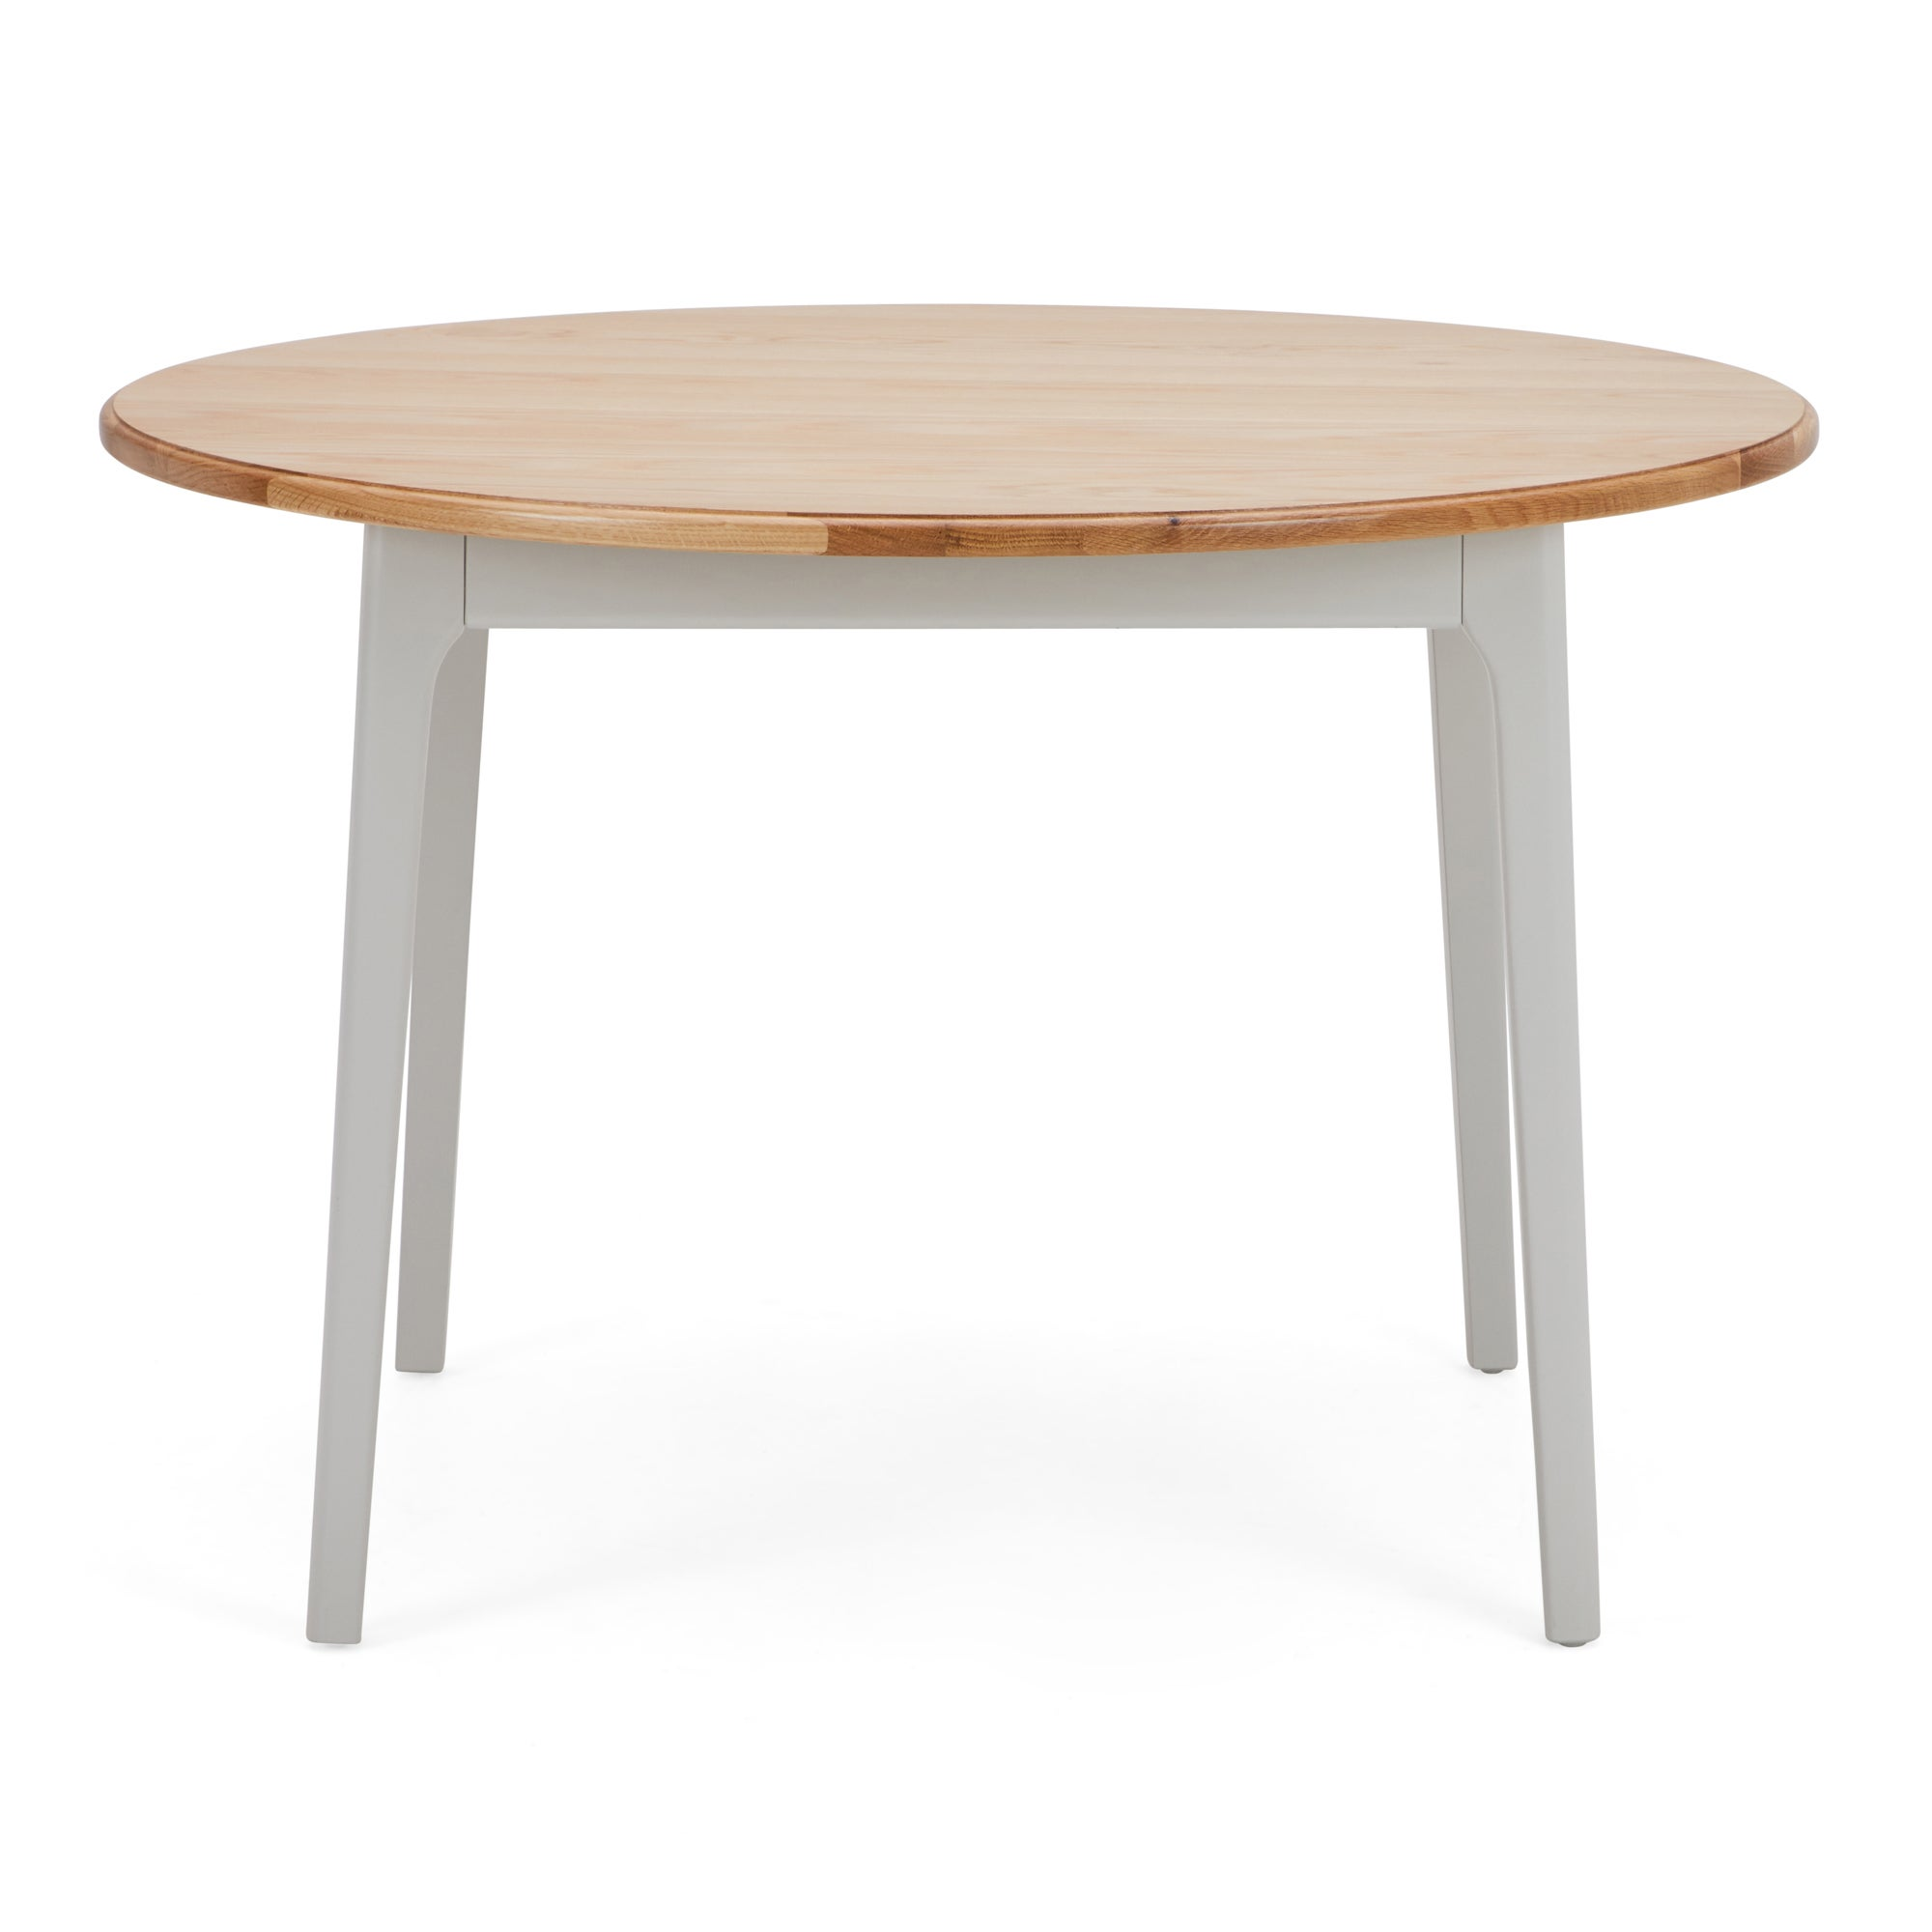 Freya Round Dining Table Grey and Brown